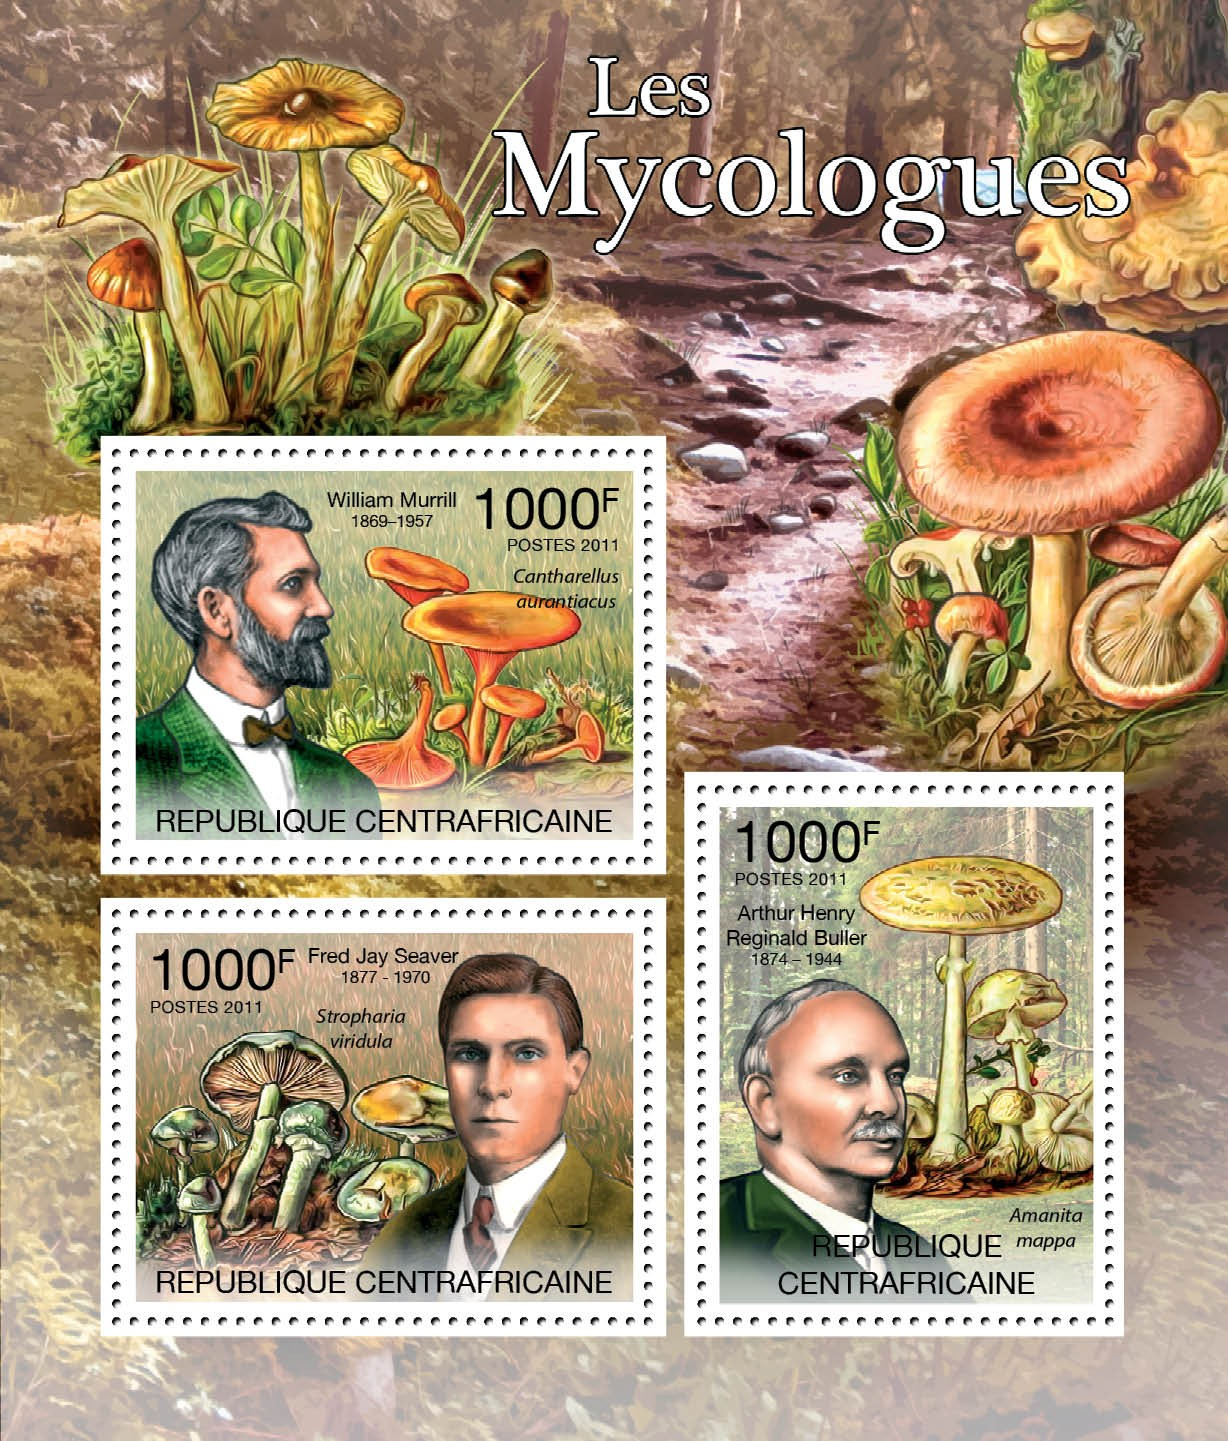 Mycologists & Mushrooms, (W.Murrill, F.j.Seaver,  A.H.R.Buller) - Issue of Central African republic postage stamps